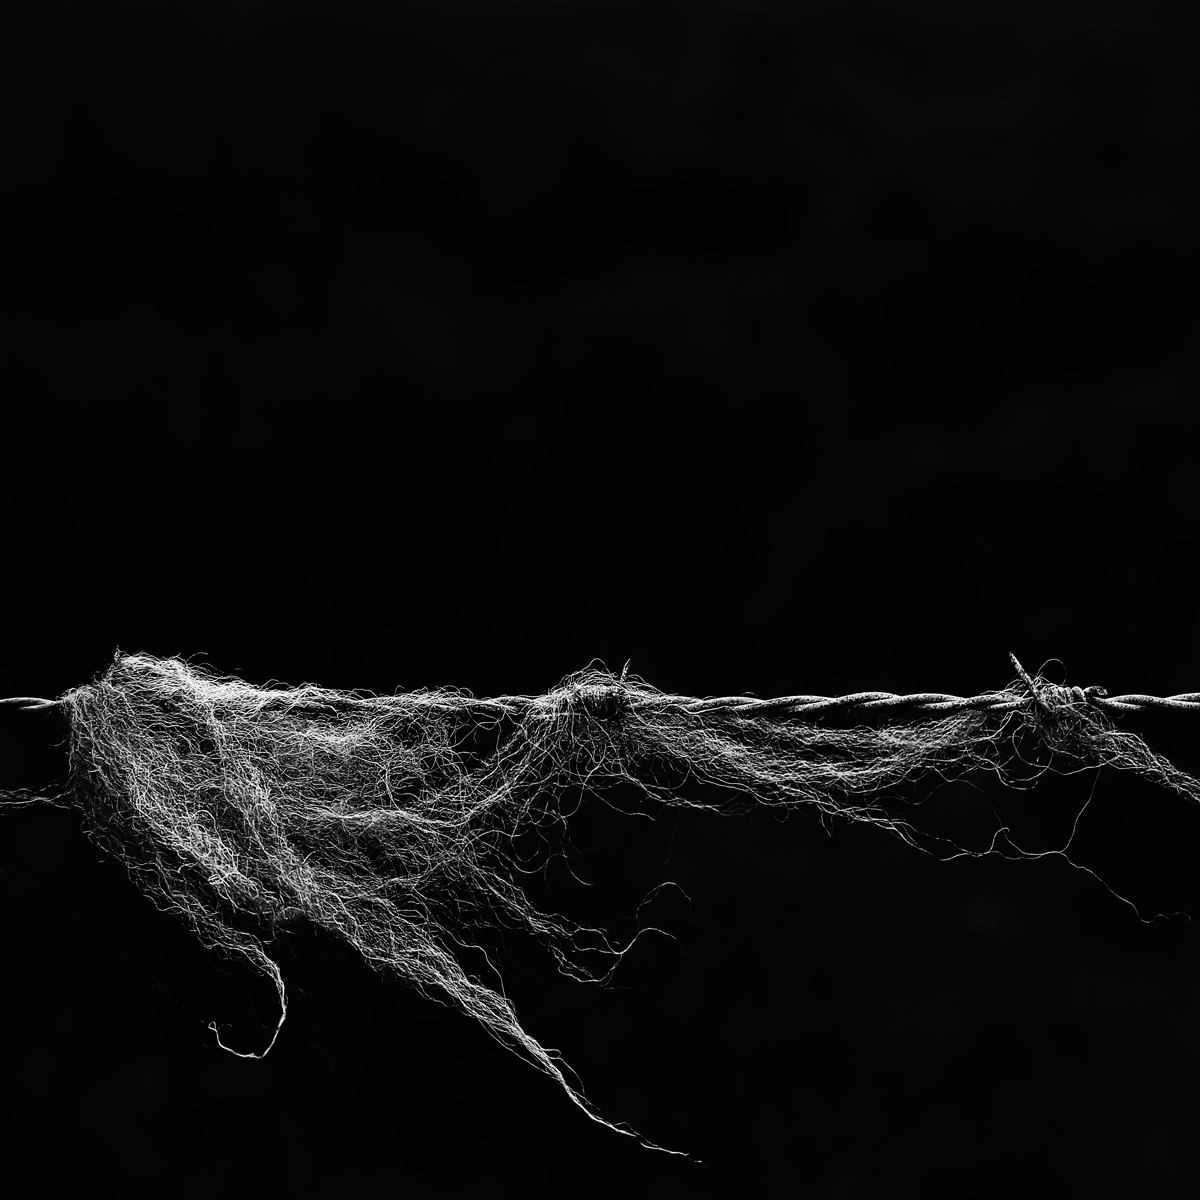 Wool on wire, Devil's Dyke. Canon 6D, Canon EF 24-105mm f/4 at 88mm, ISO 400, 1/640s at f/6.3. July. © Beata Moore